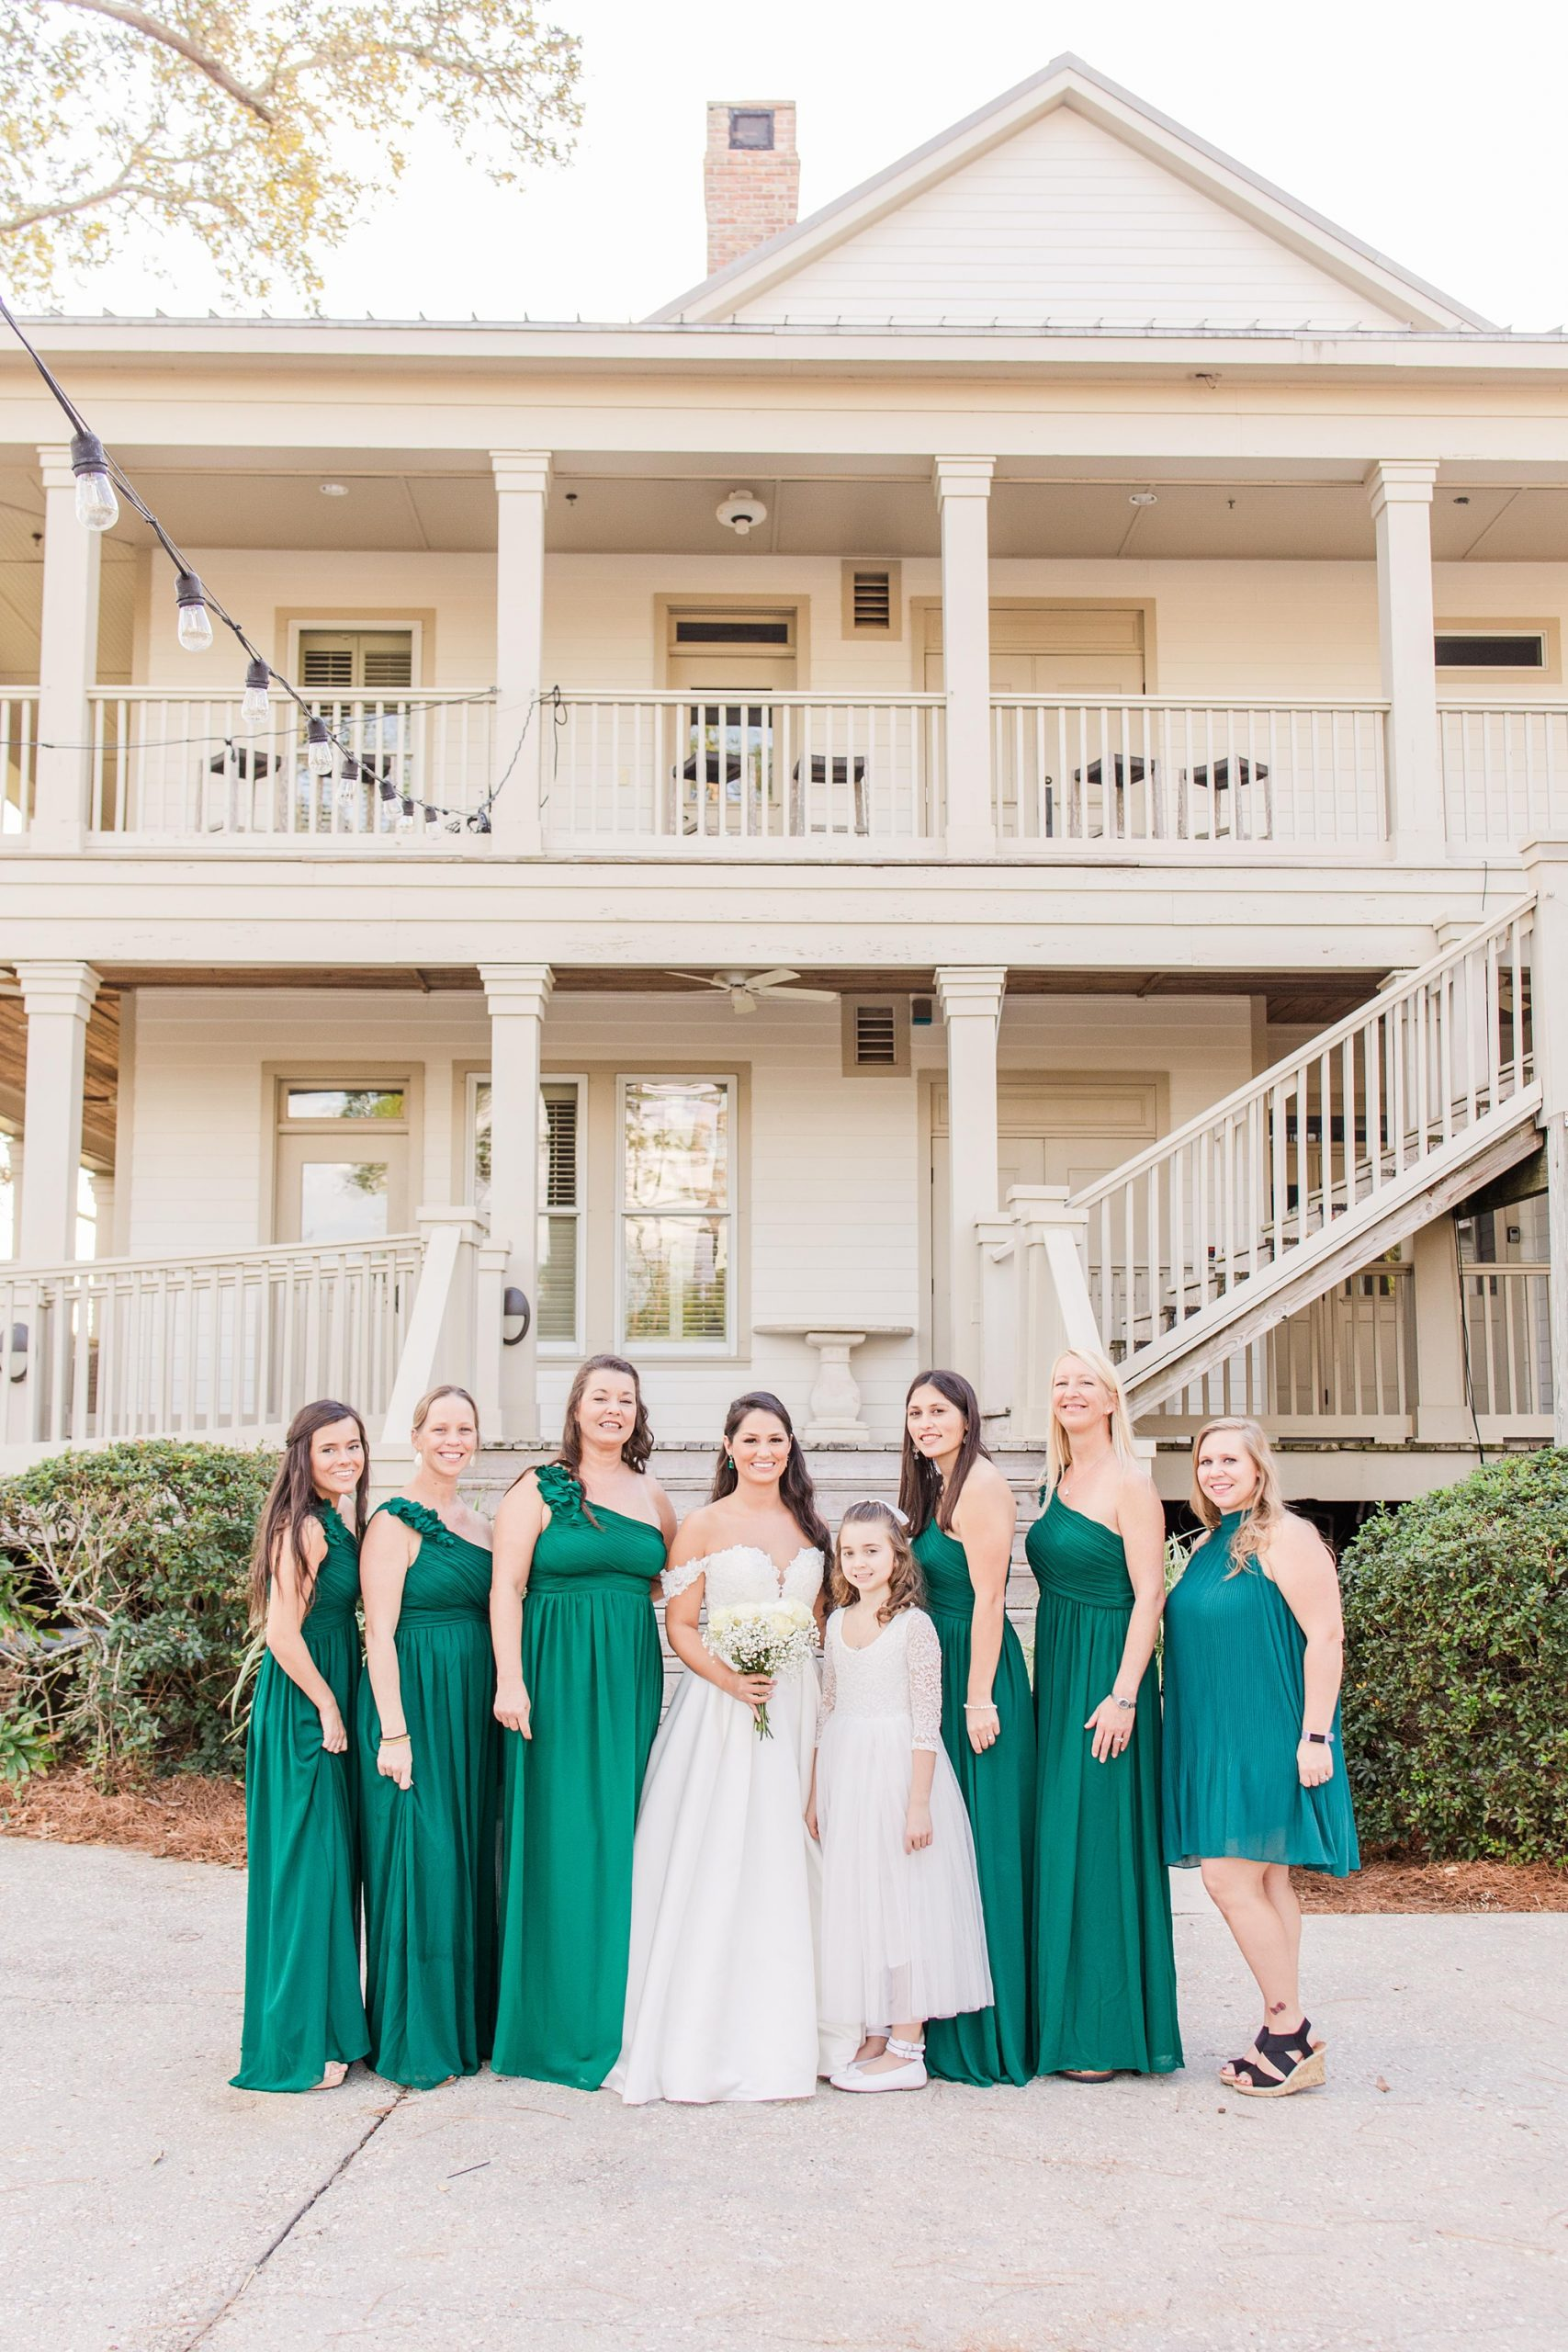 bride poses with bridesmaids in emerald green dresses